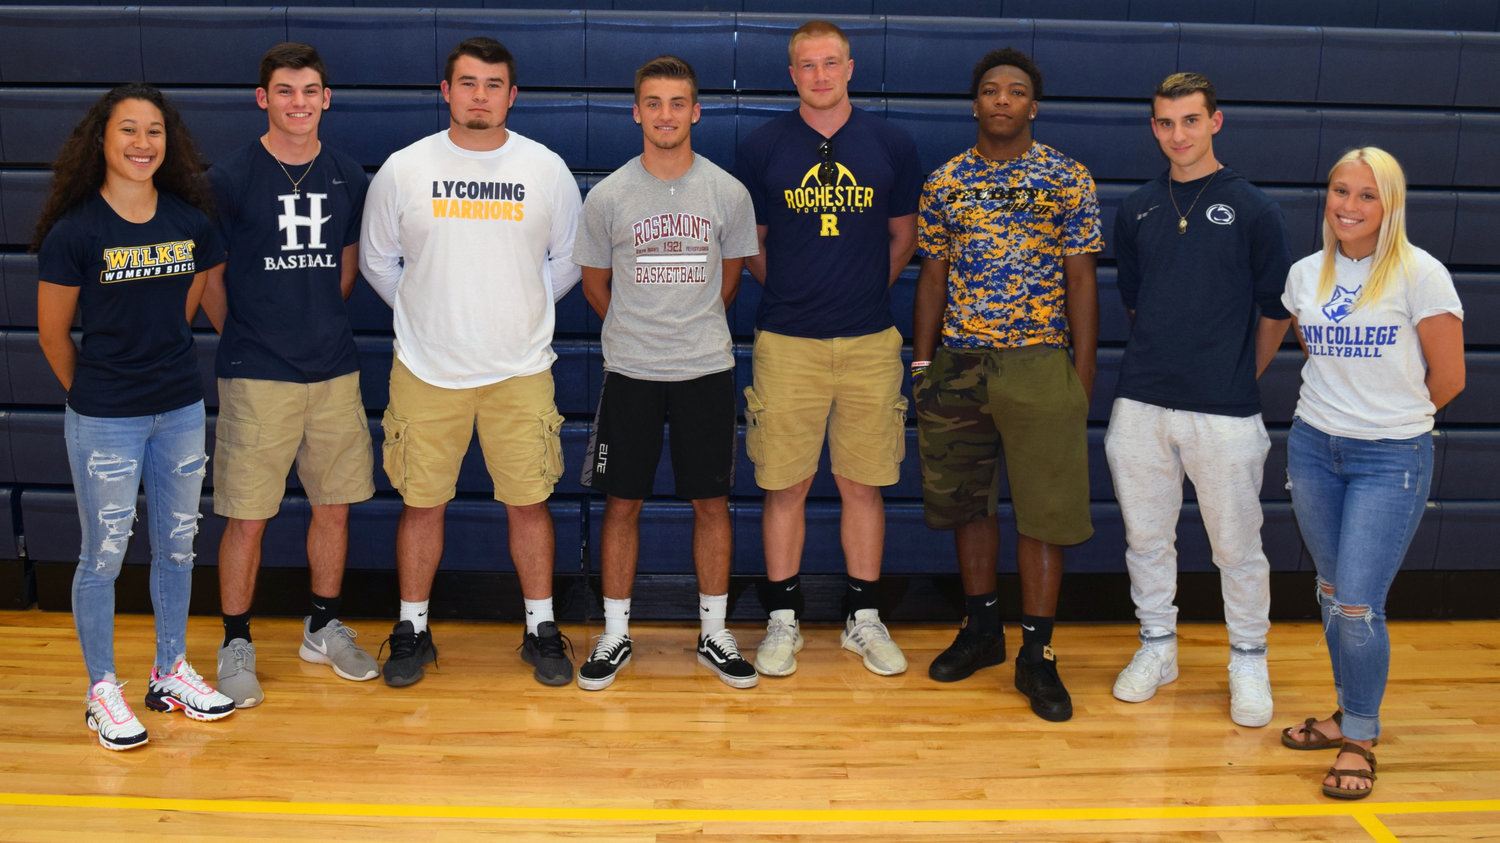 Eight Middletown Area High School seniors announced their college commitments May 28 at a signing ceremony held at MAHS. From left are Hayli Akakpo-Martin, who will play soccer at Wilkes University in Wilkes-Barre; Scott Ash, who will play baseball at Hood College in Frederick, Maryland; Joseph Gusler, who will play football at Lycoming College in Williamsport; Tyler Petroski, who will play basketball at Rosemont College in Rosemont; Ethan Miller, who will play football at the University of Rochester in Rochester, New York; Trayvon Joseph, who will play football at Thaddeus Stevens College in Lancaster; Anthony LaVia, who will play soccer at Penn State University Harrisburg; and Hannah Wilsbach, who will play volleyball at Penn College in Williamsport.